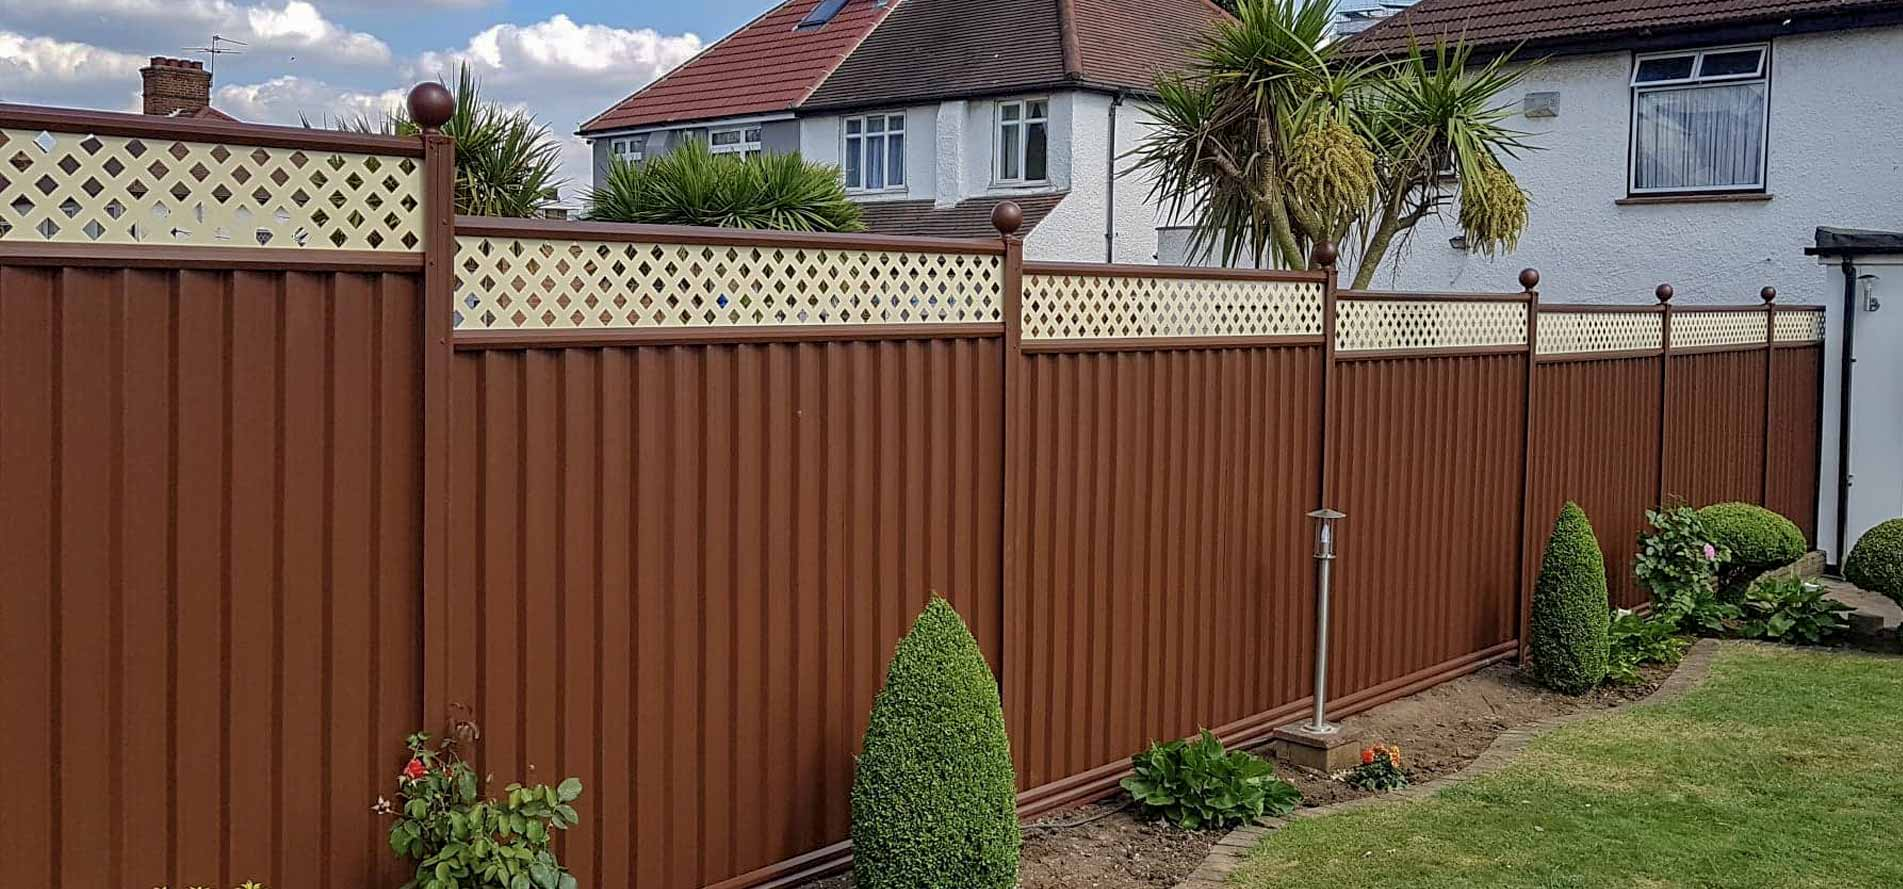 Metal garden fencing in Huntingdon